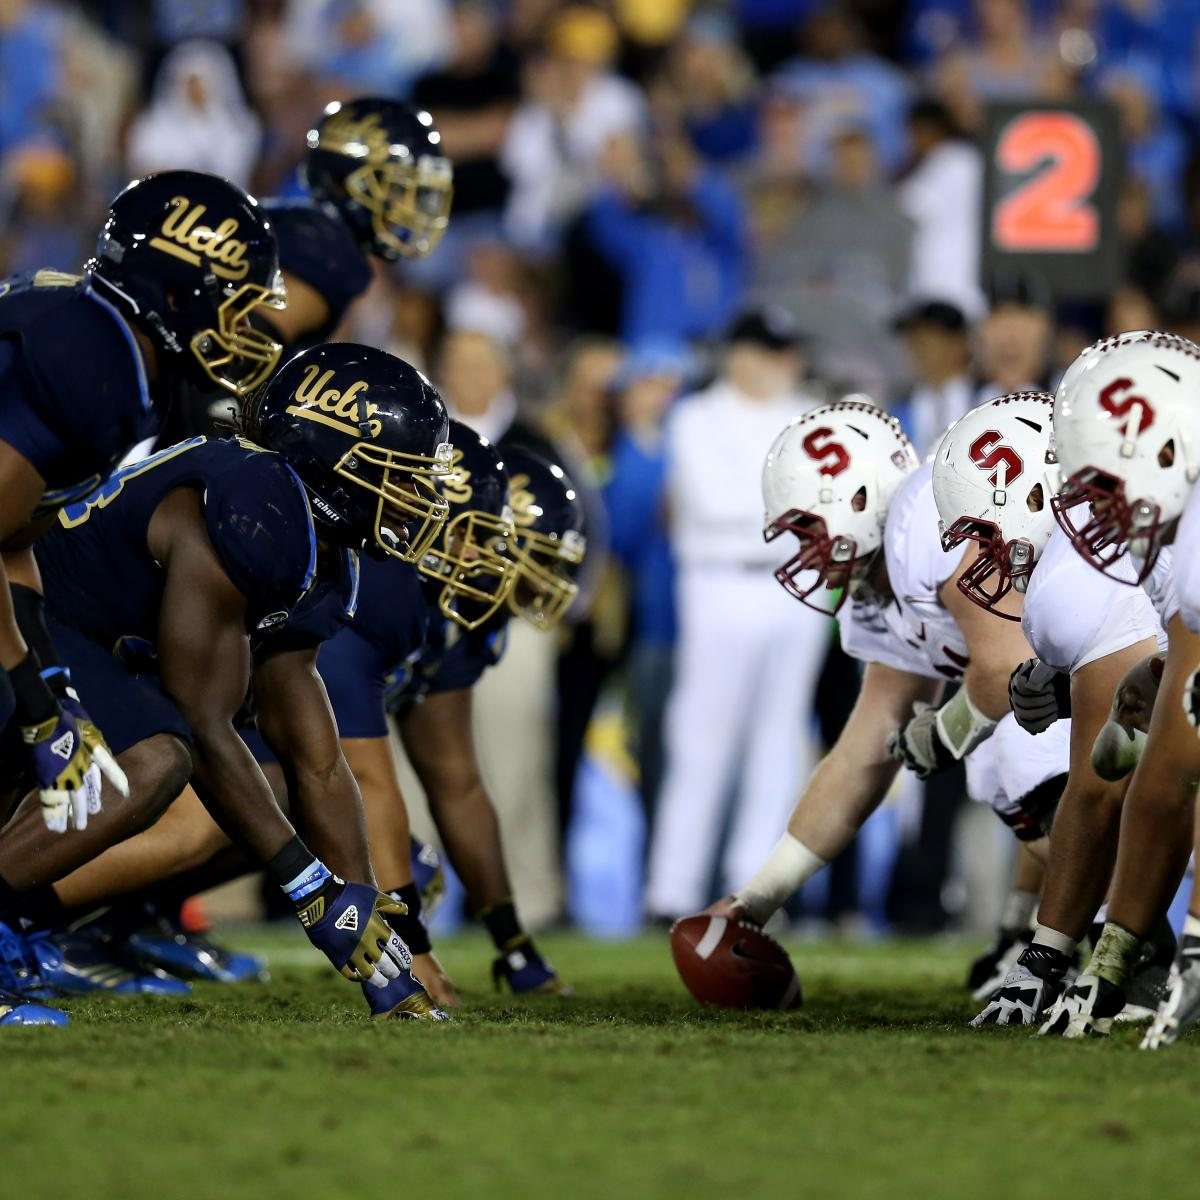 Photo Gallery Ucla Vs Cal: Pac-12 Championship 2012: UCLA Vs. Stanford TV Info